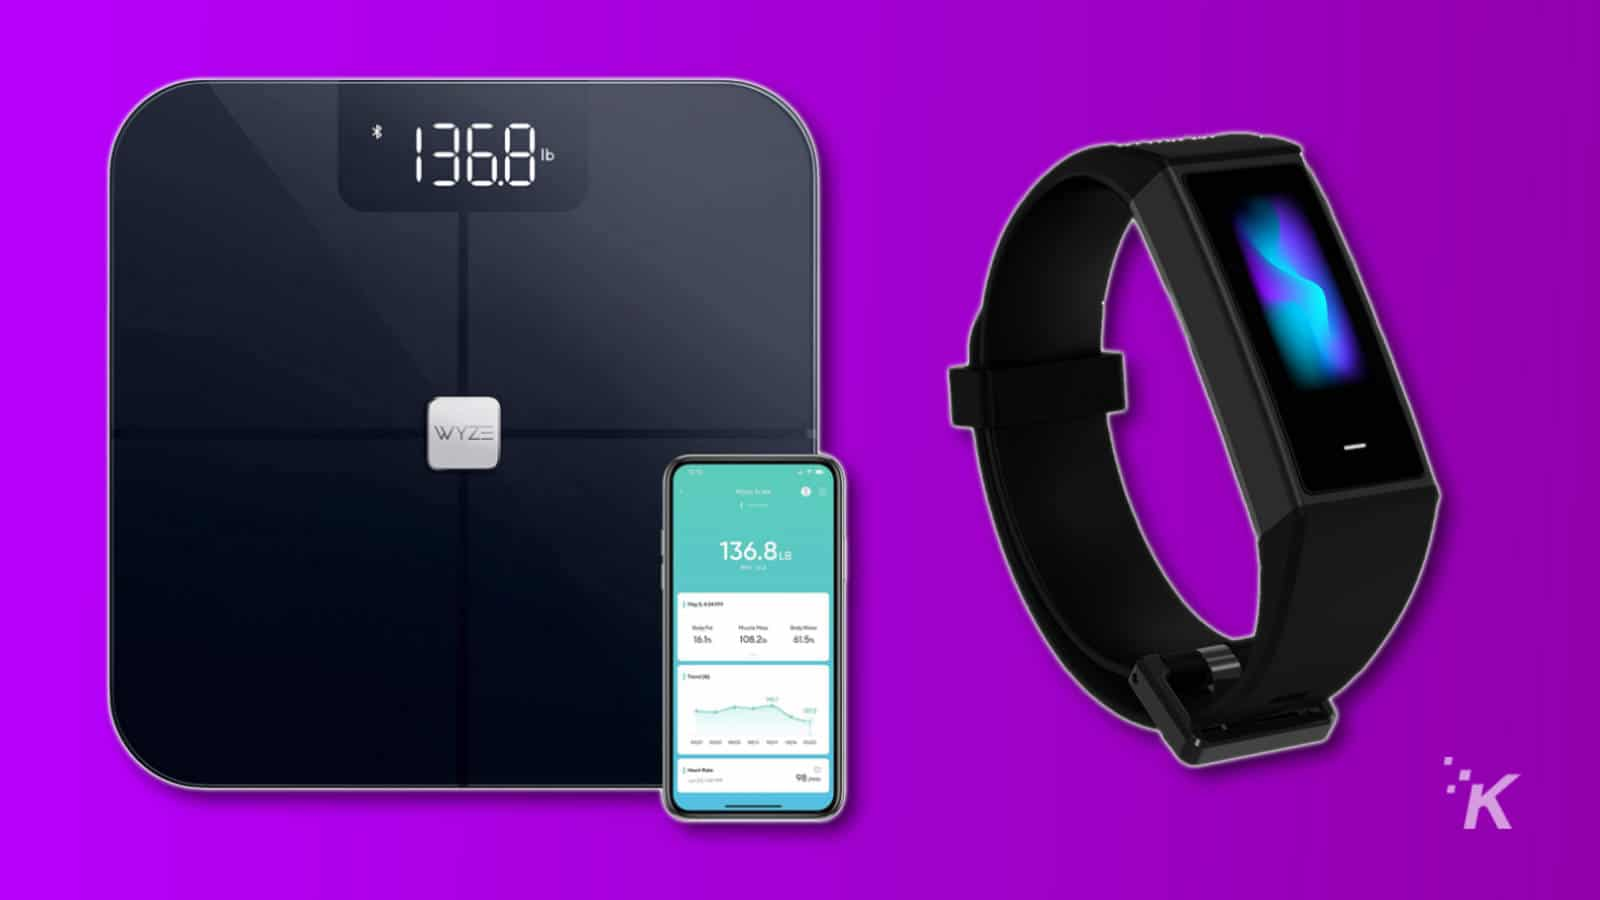 wyze smart products